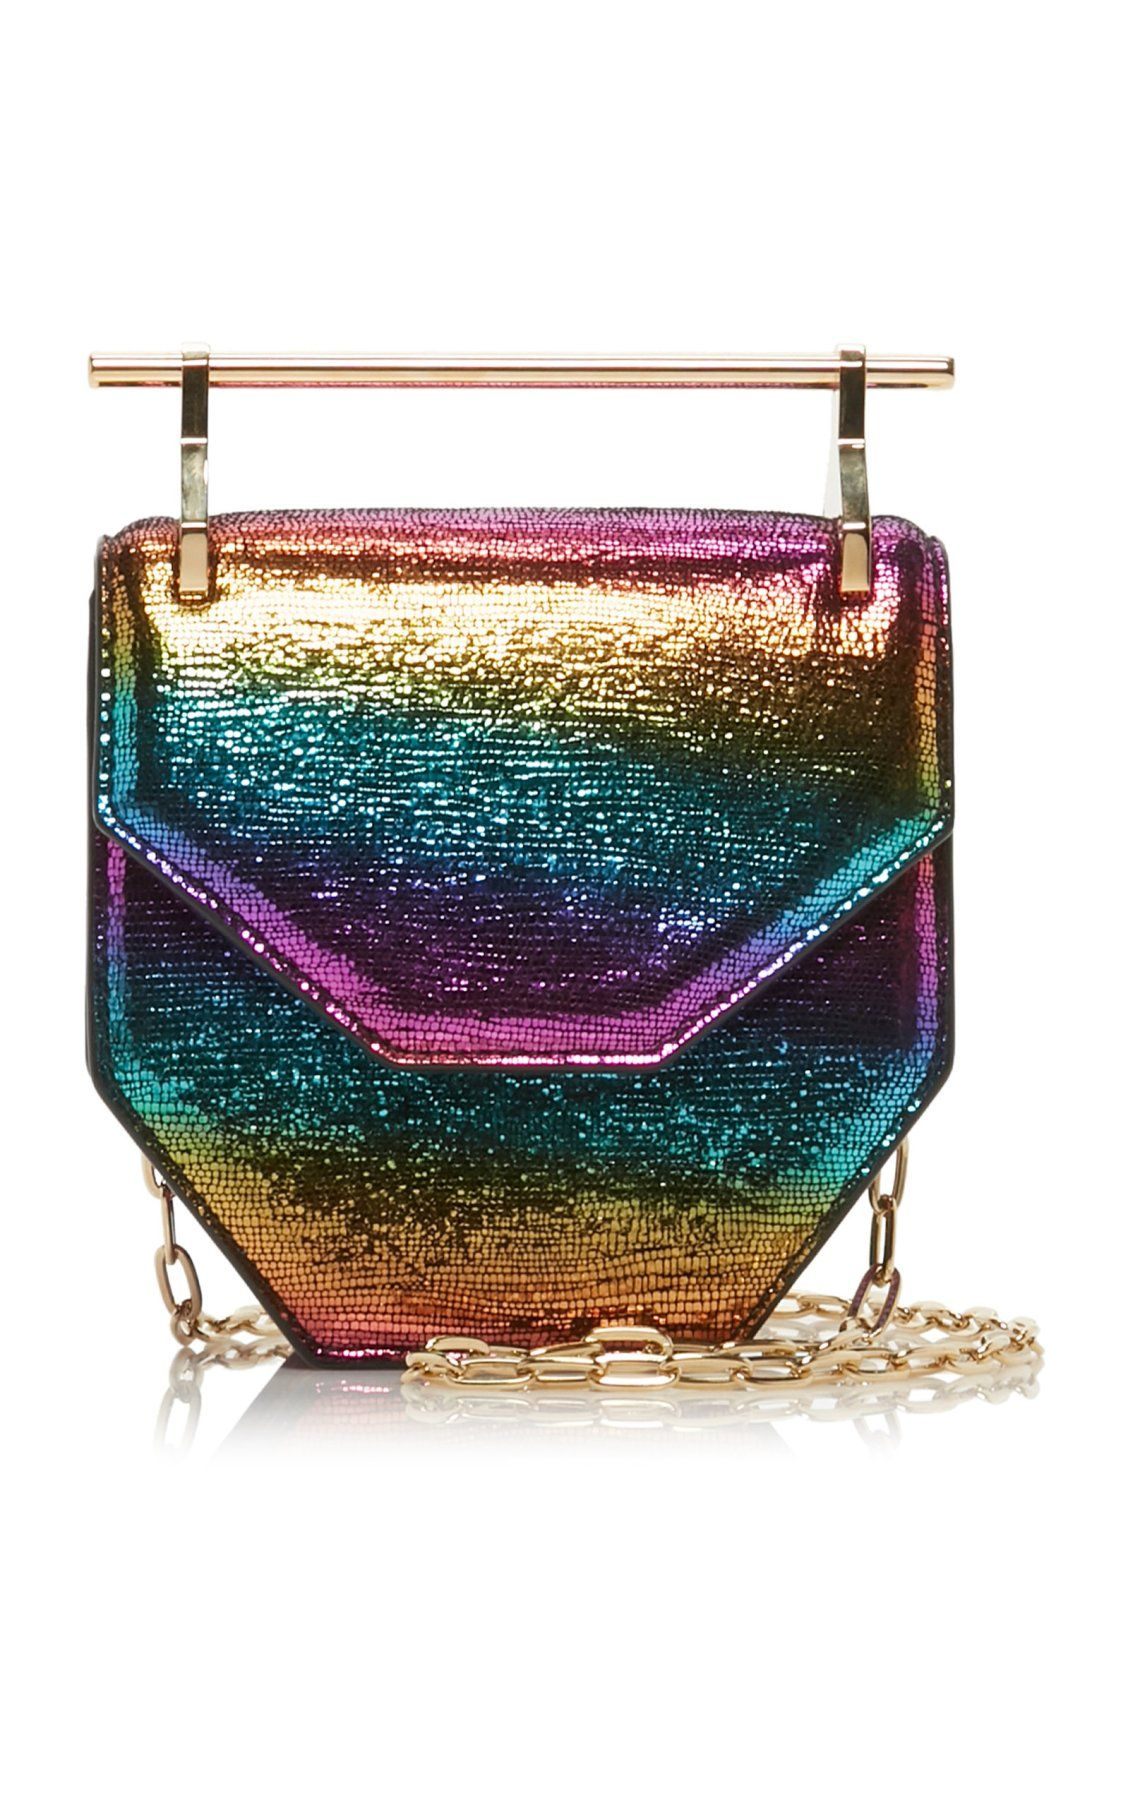 00bad3d556 Mini Amor Fati Metallic Leather Bag by M2Malletier SS19